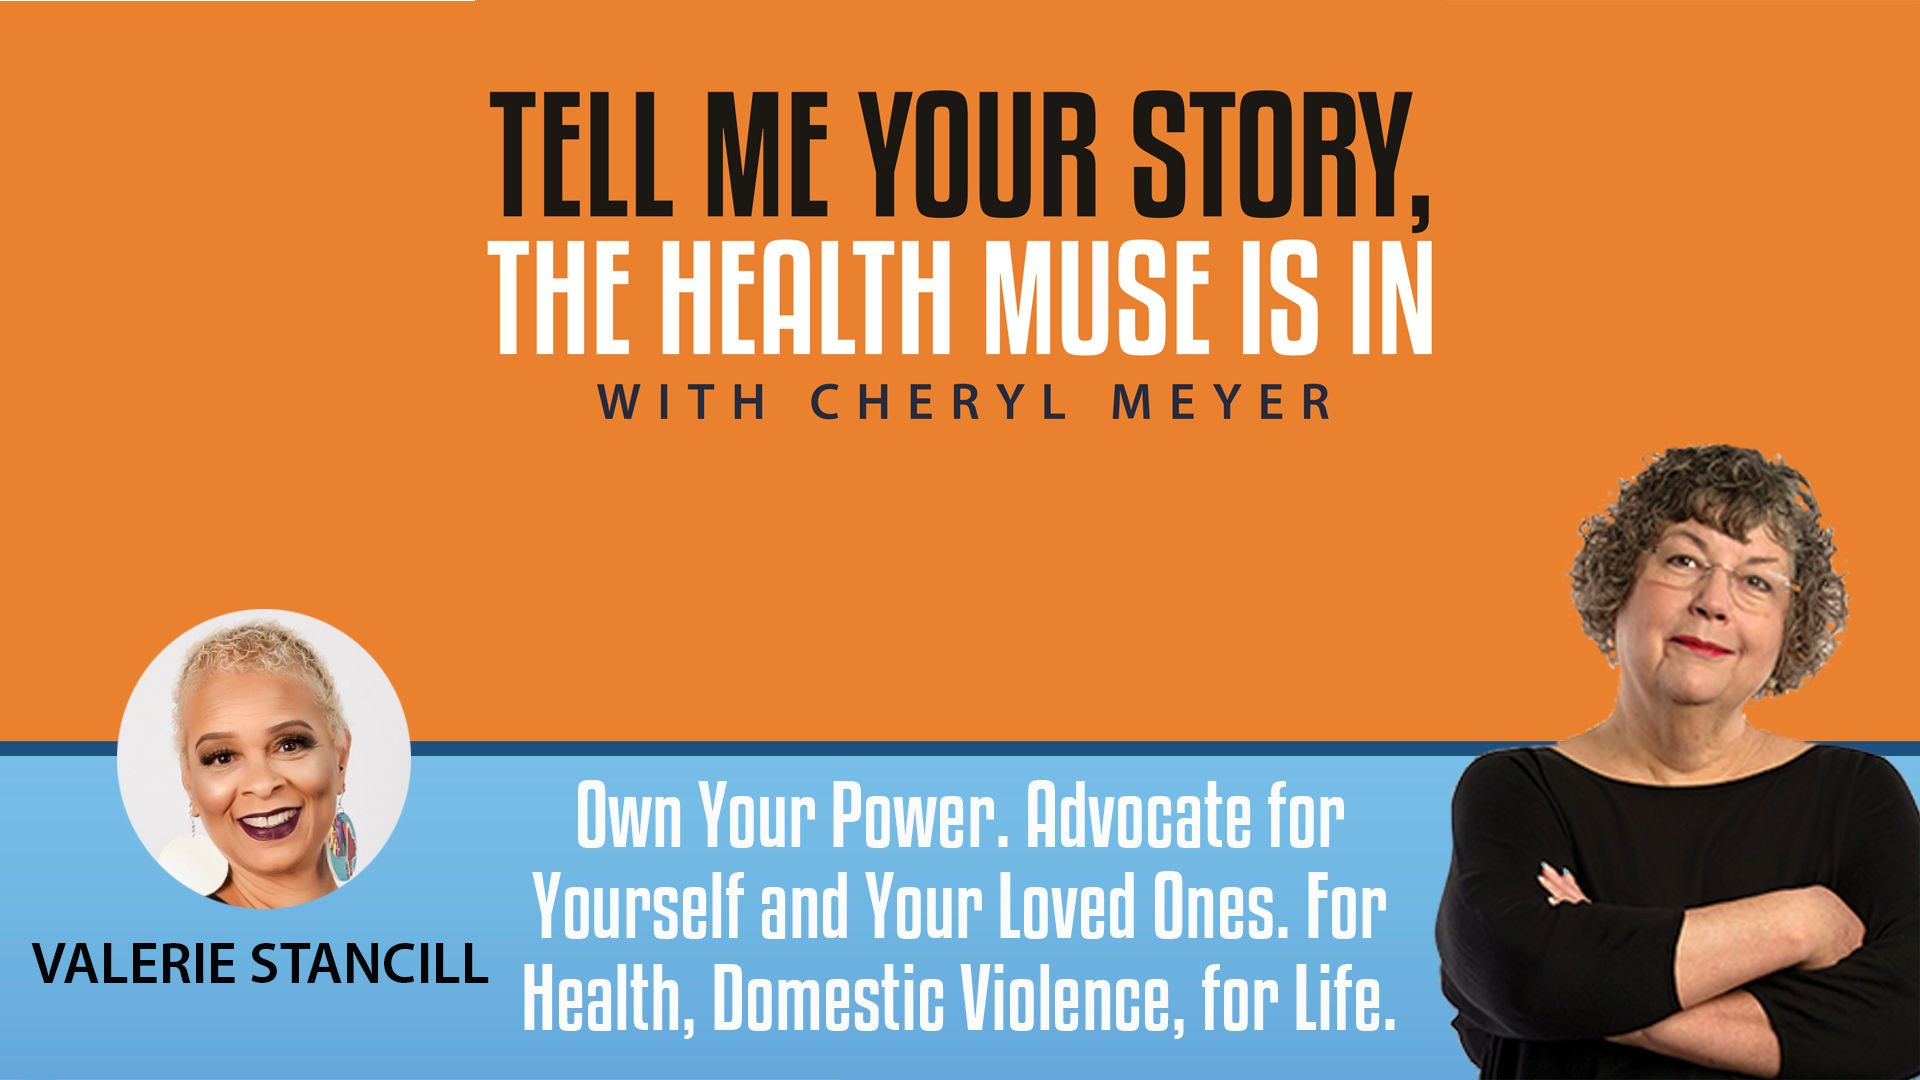 Tell Me Your Story-Valerie Stancill, Advocate for Self, Loved Ones, for Health, Domestic Violence, Life